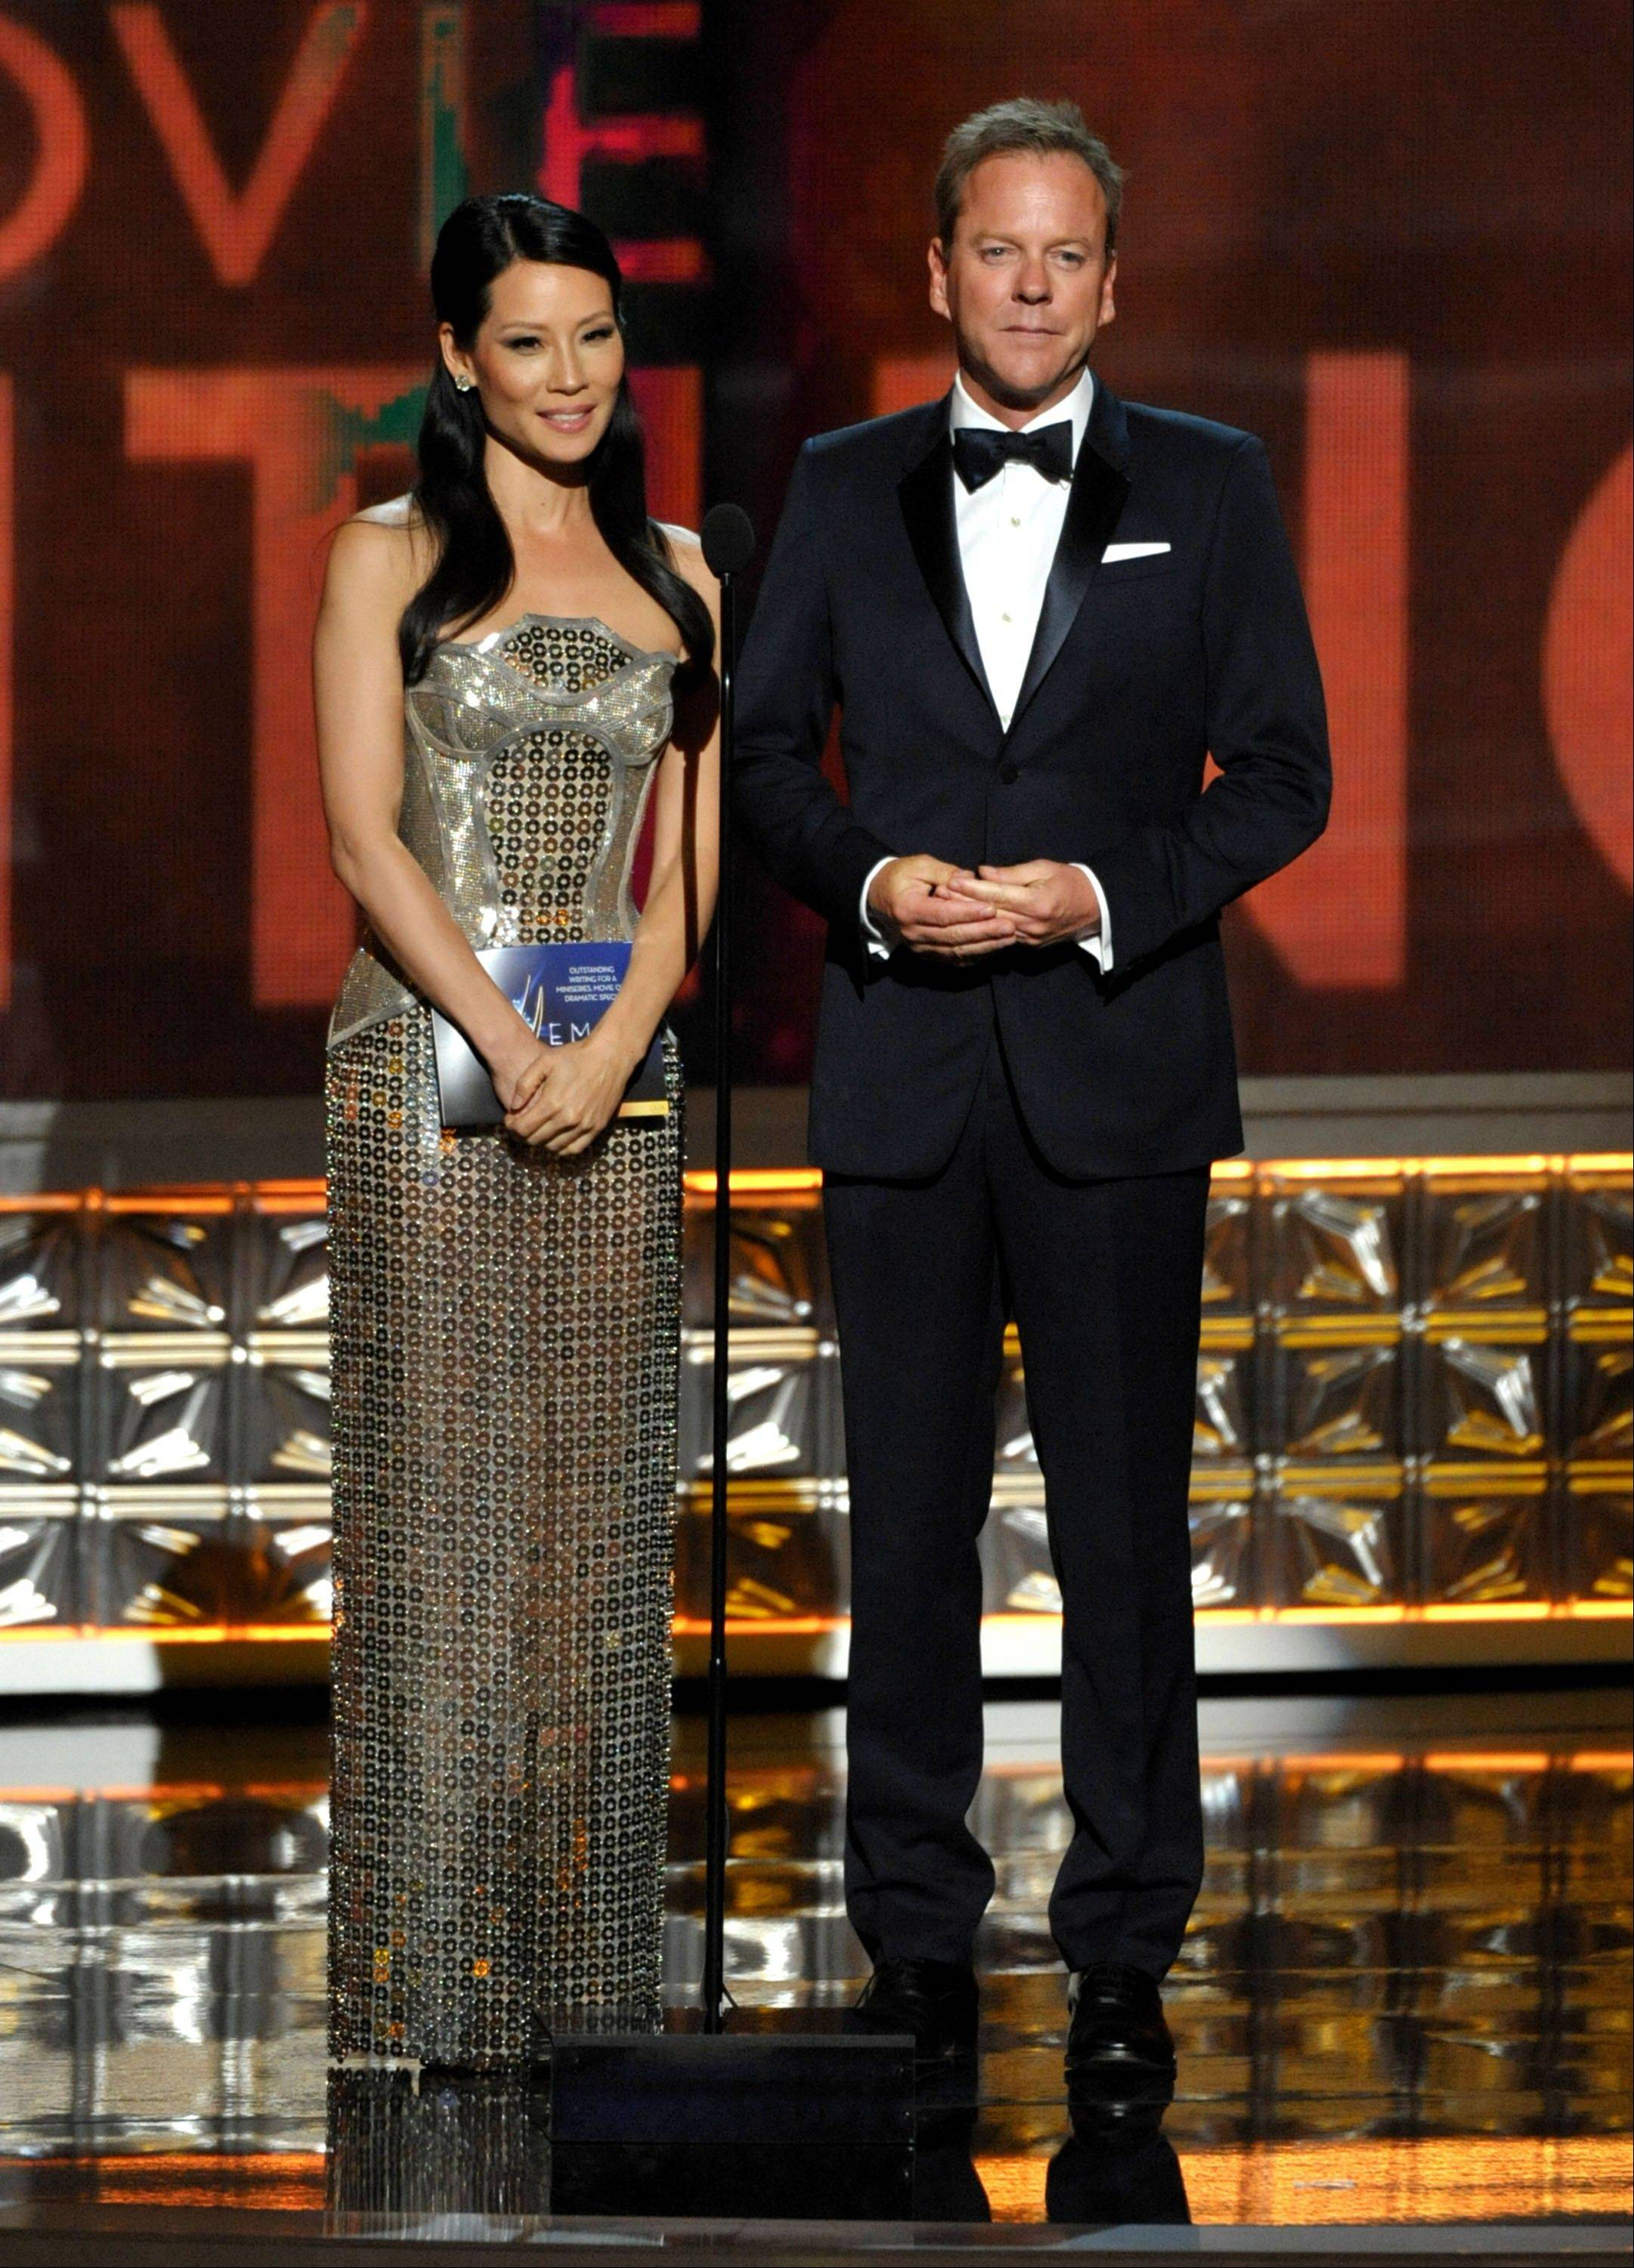 """Elementary"" star Lucy Liu, left, and Kiefer Sutherland present an award onstage."